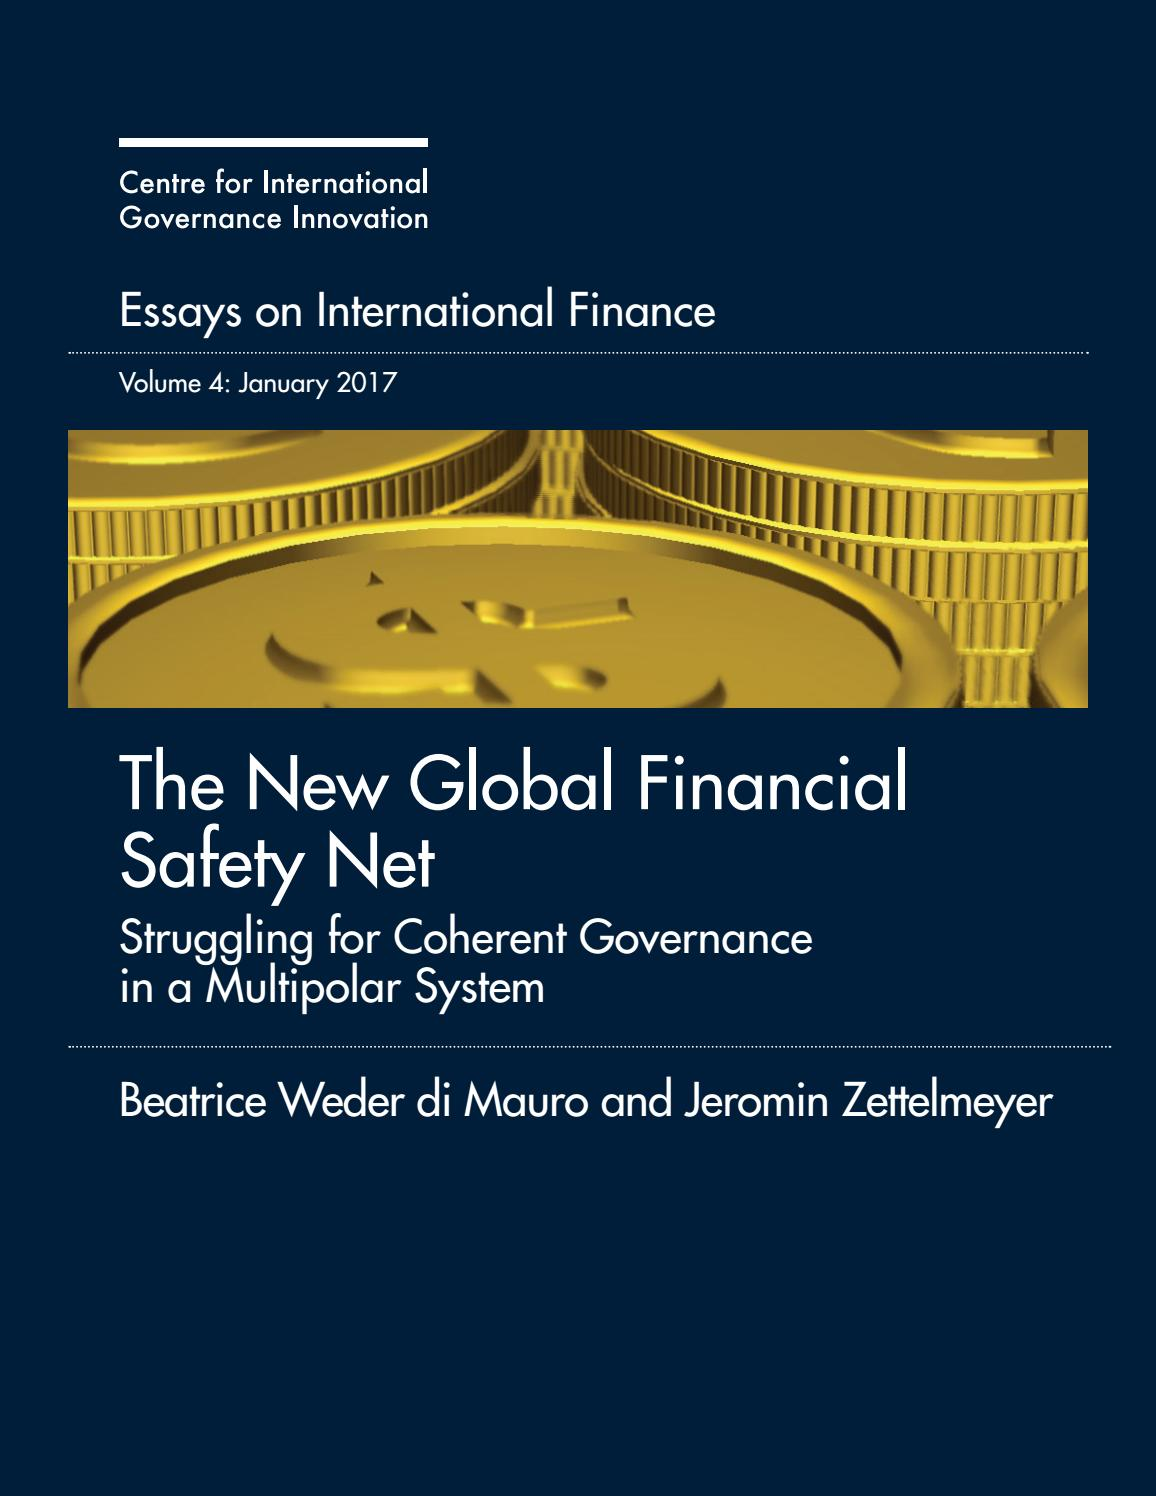 cigi essays on international finance volume 4 the new global financial essay vol 4 2 months ago cigi